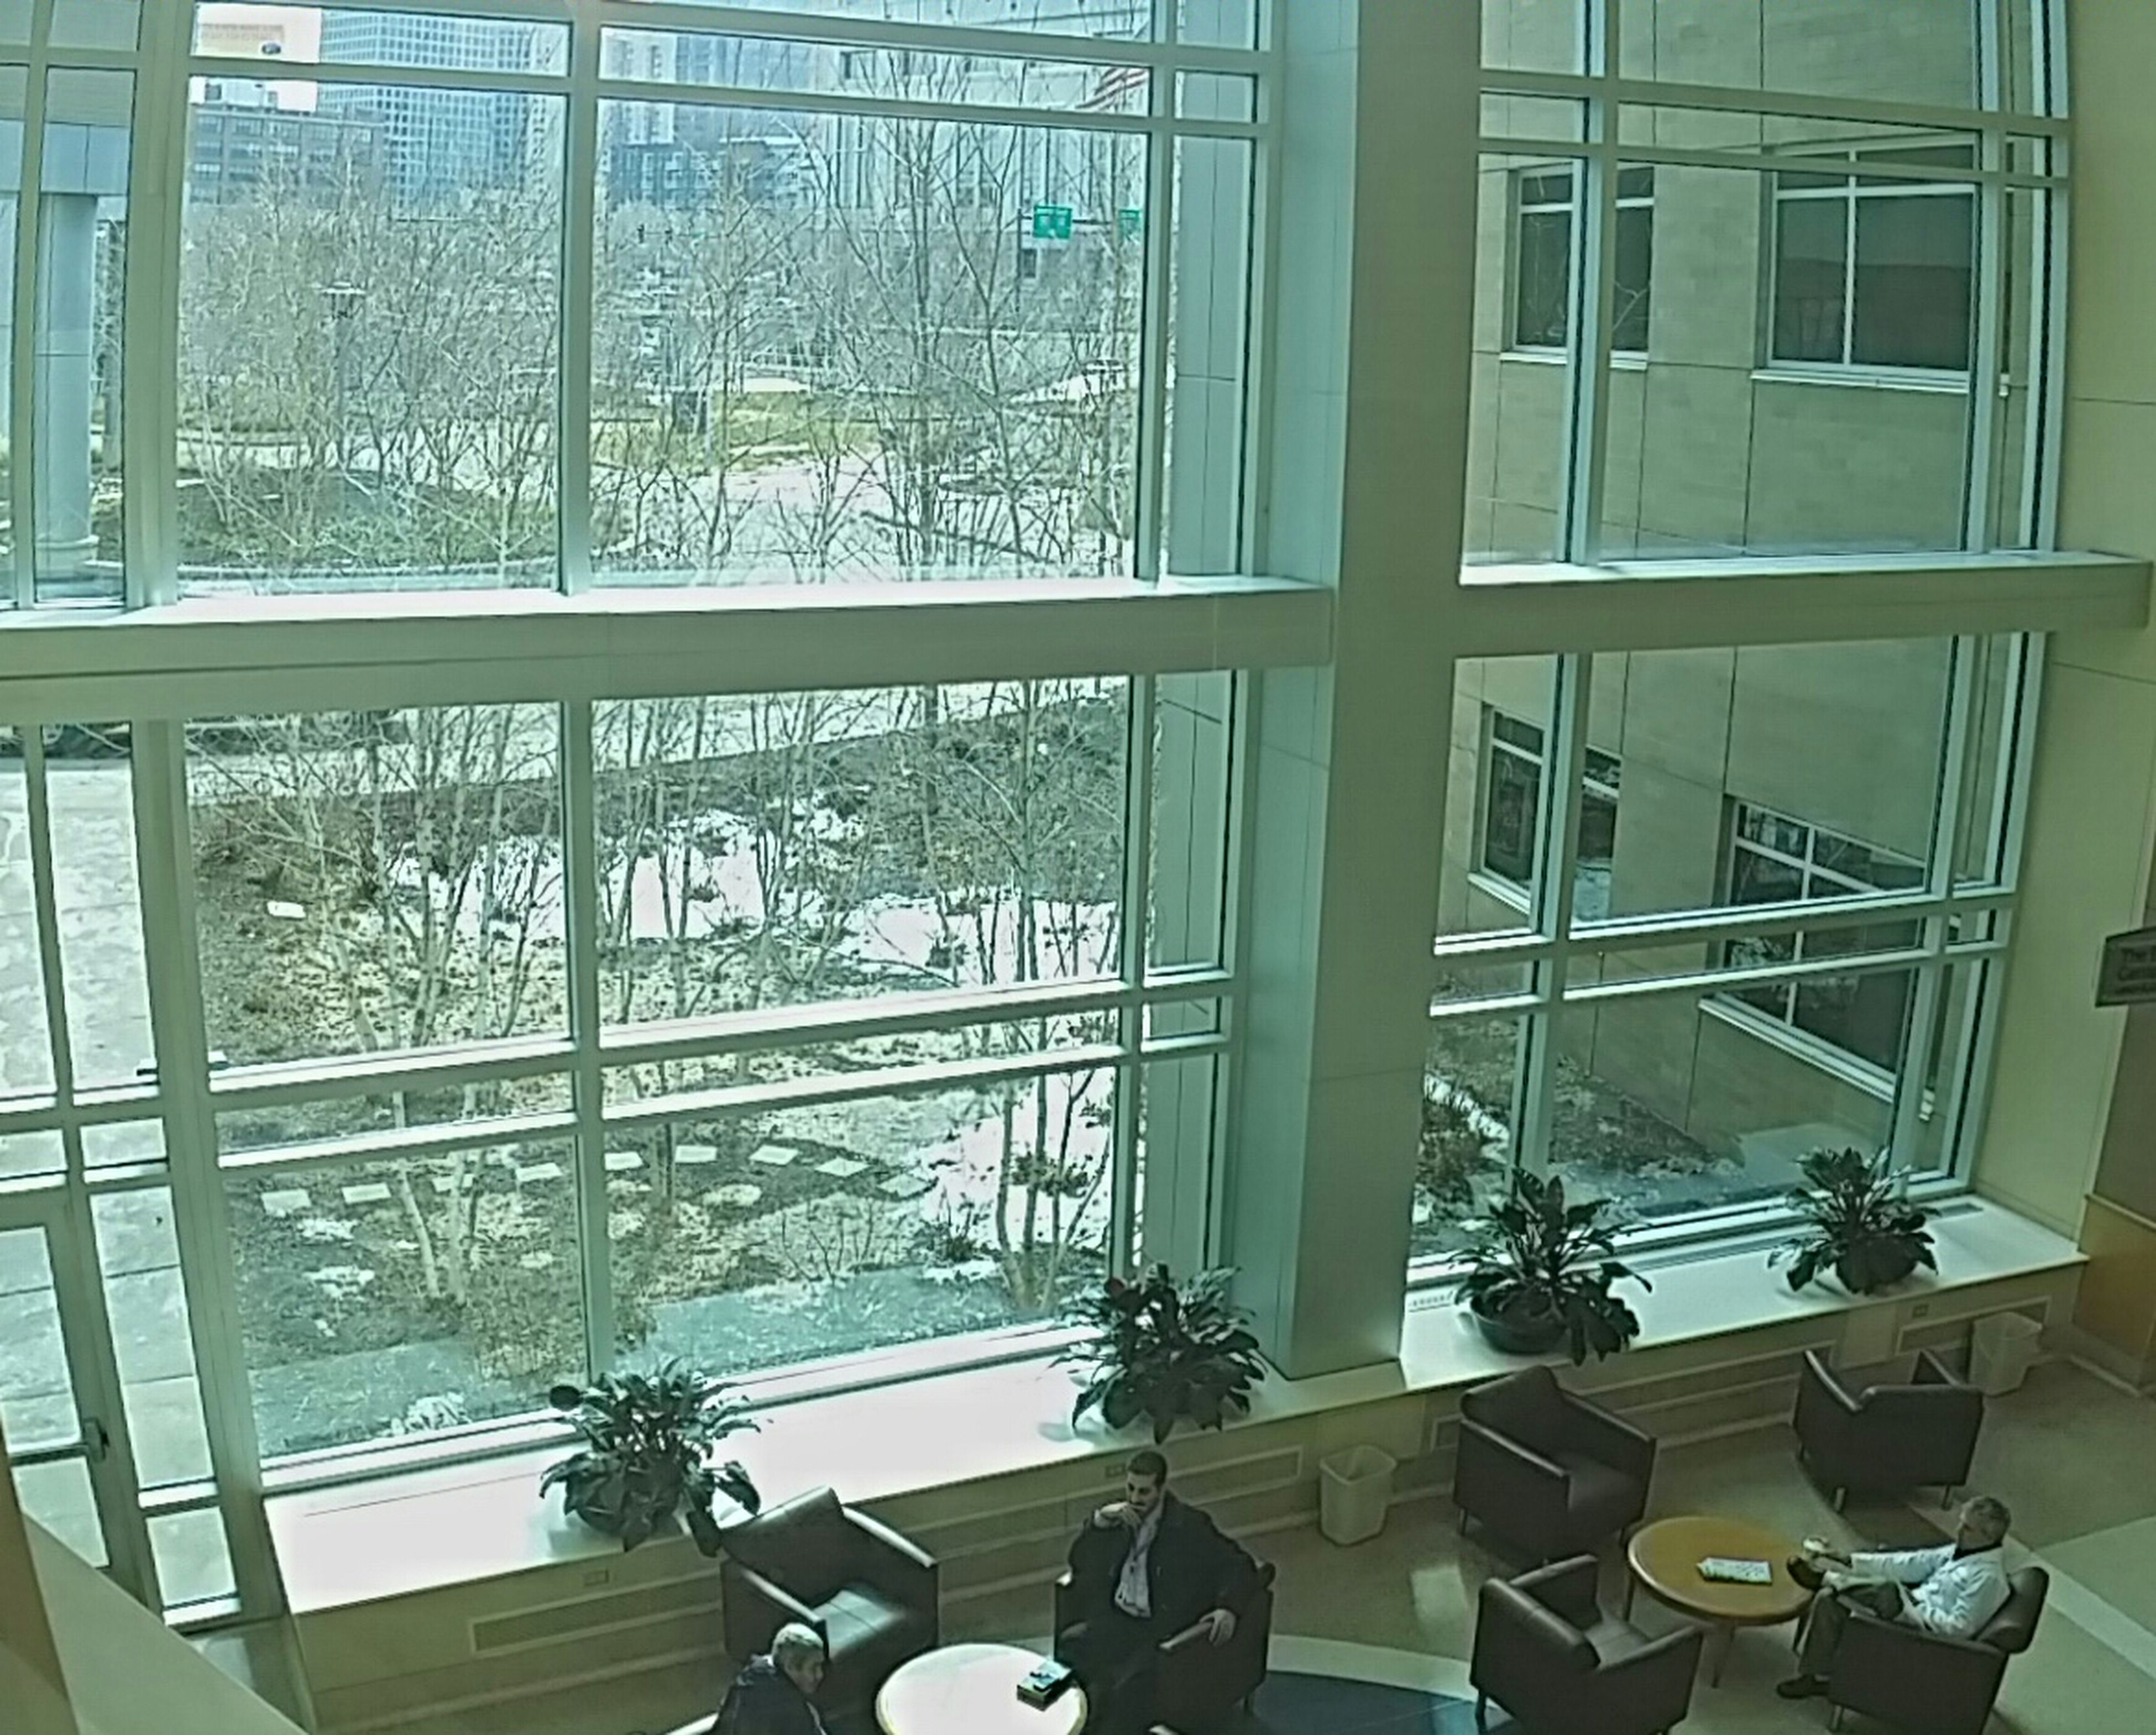 window, indoors, architecture, built structure, glass - material, building exterior, building, day, transparent, reflection, modern, no people, city, interior, railing, balcony, low angle view, wall, chair, communication